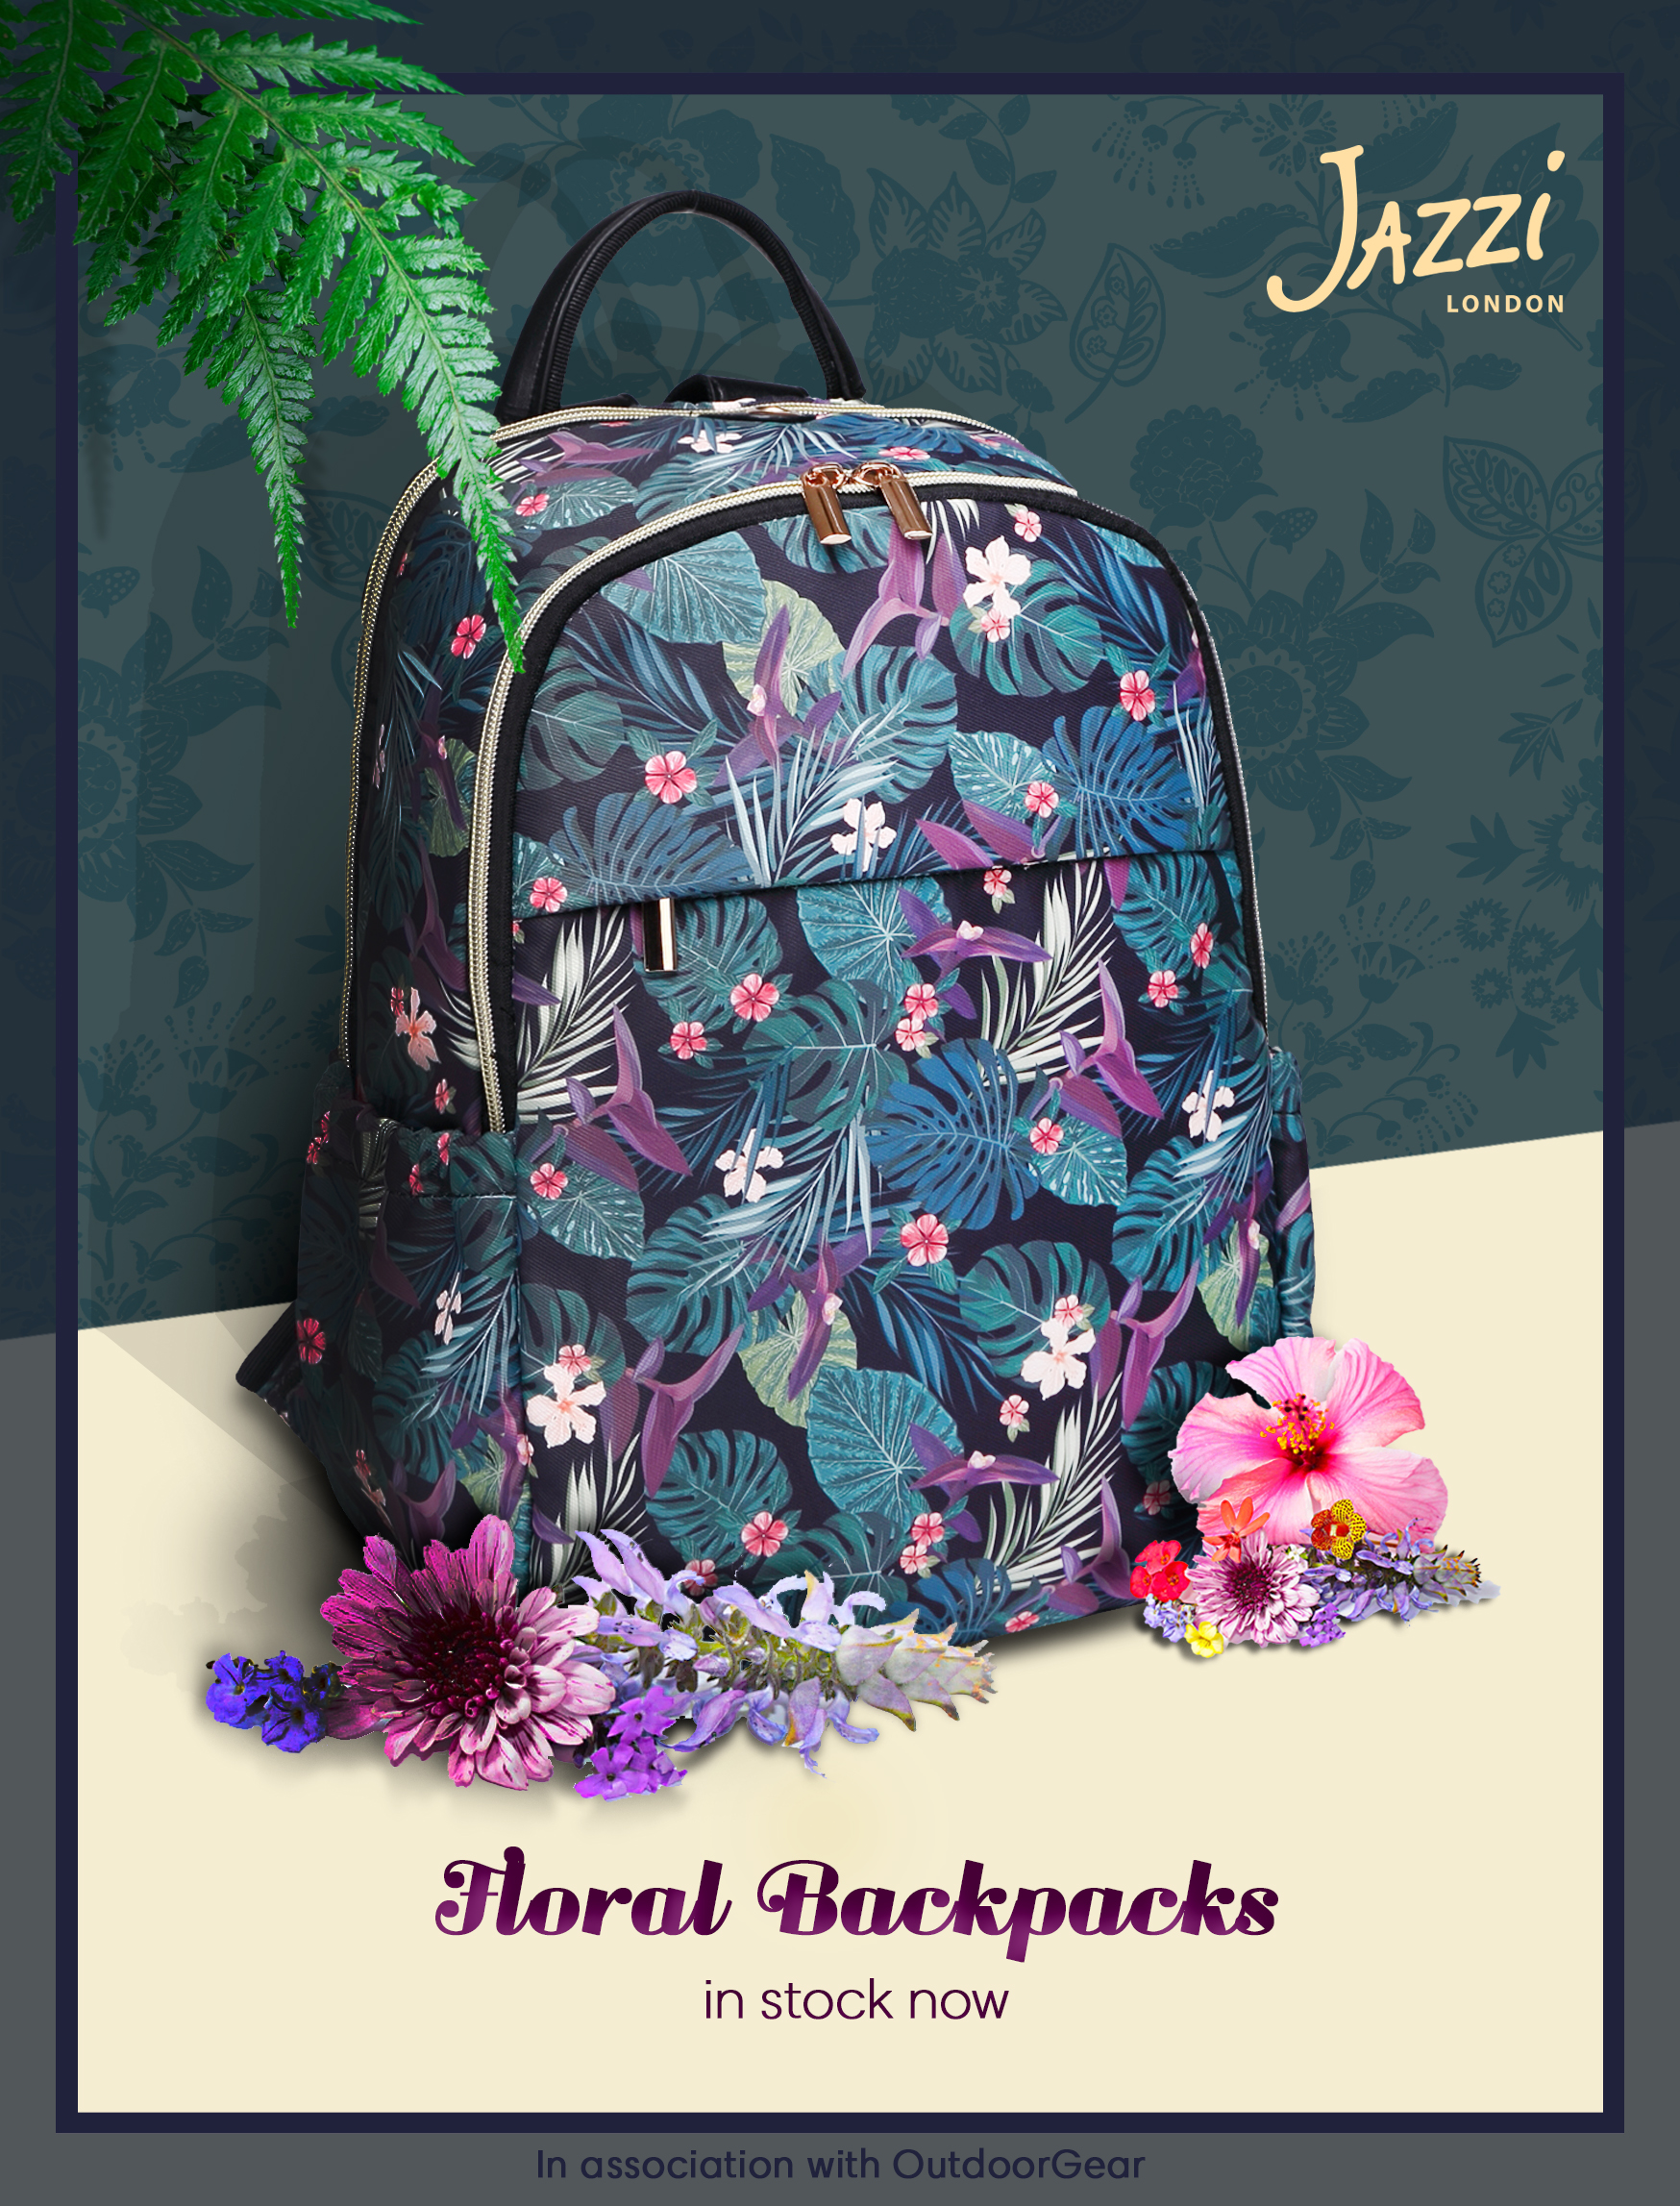 JL4474 Floral Backpacks.jpg